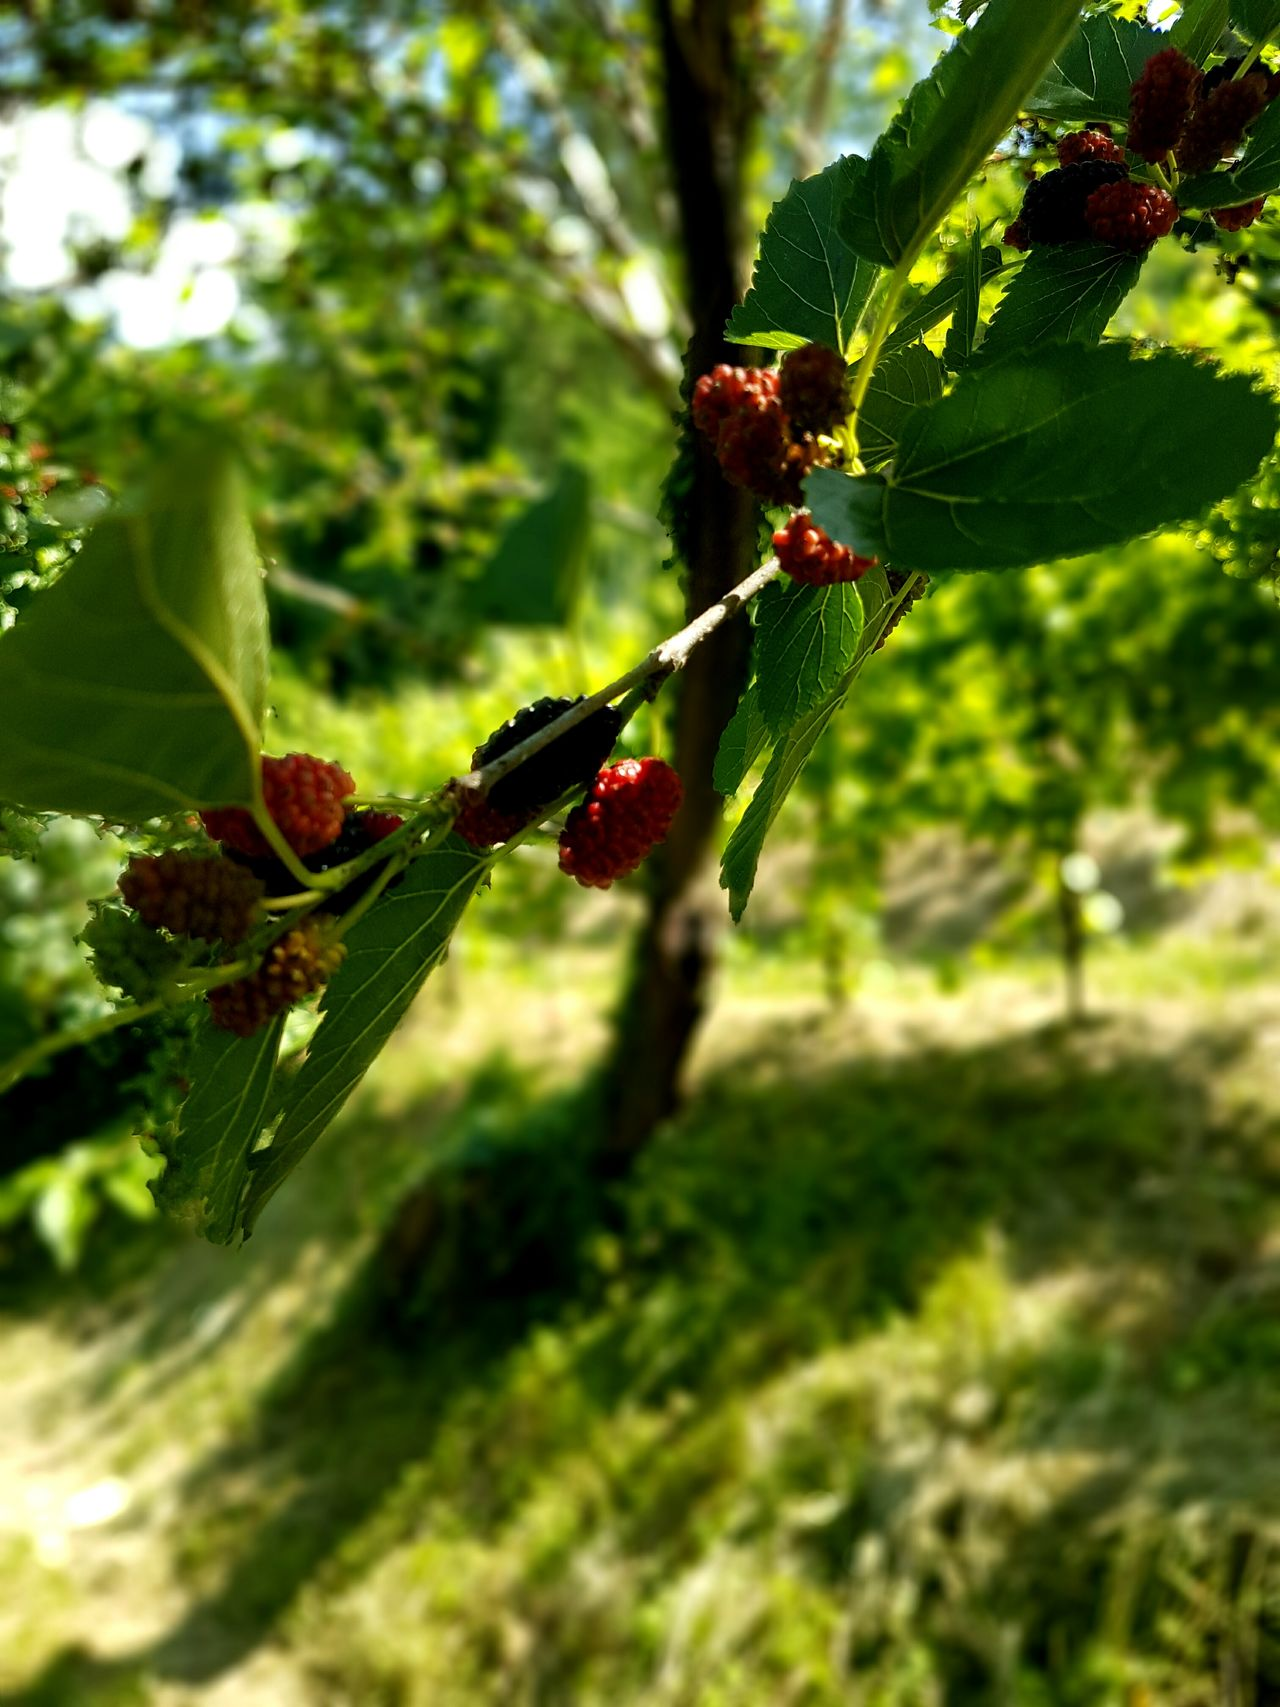 Green Color Day Nature No People Outdoors Focus On Foreground Plant Tree Close-up Beauty In Nature Proseccotime Proseccohills Mulberry Prosecco Land Mulberry Tree Growth